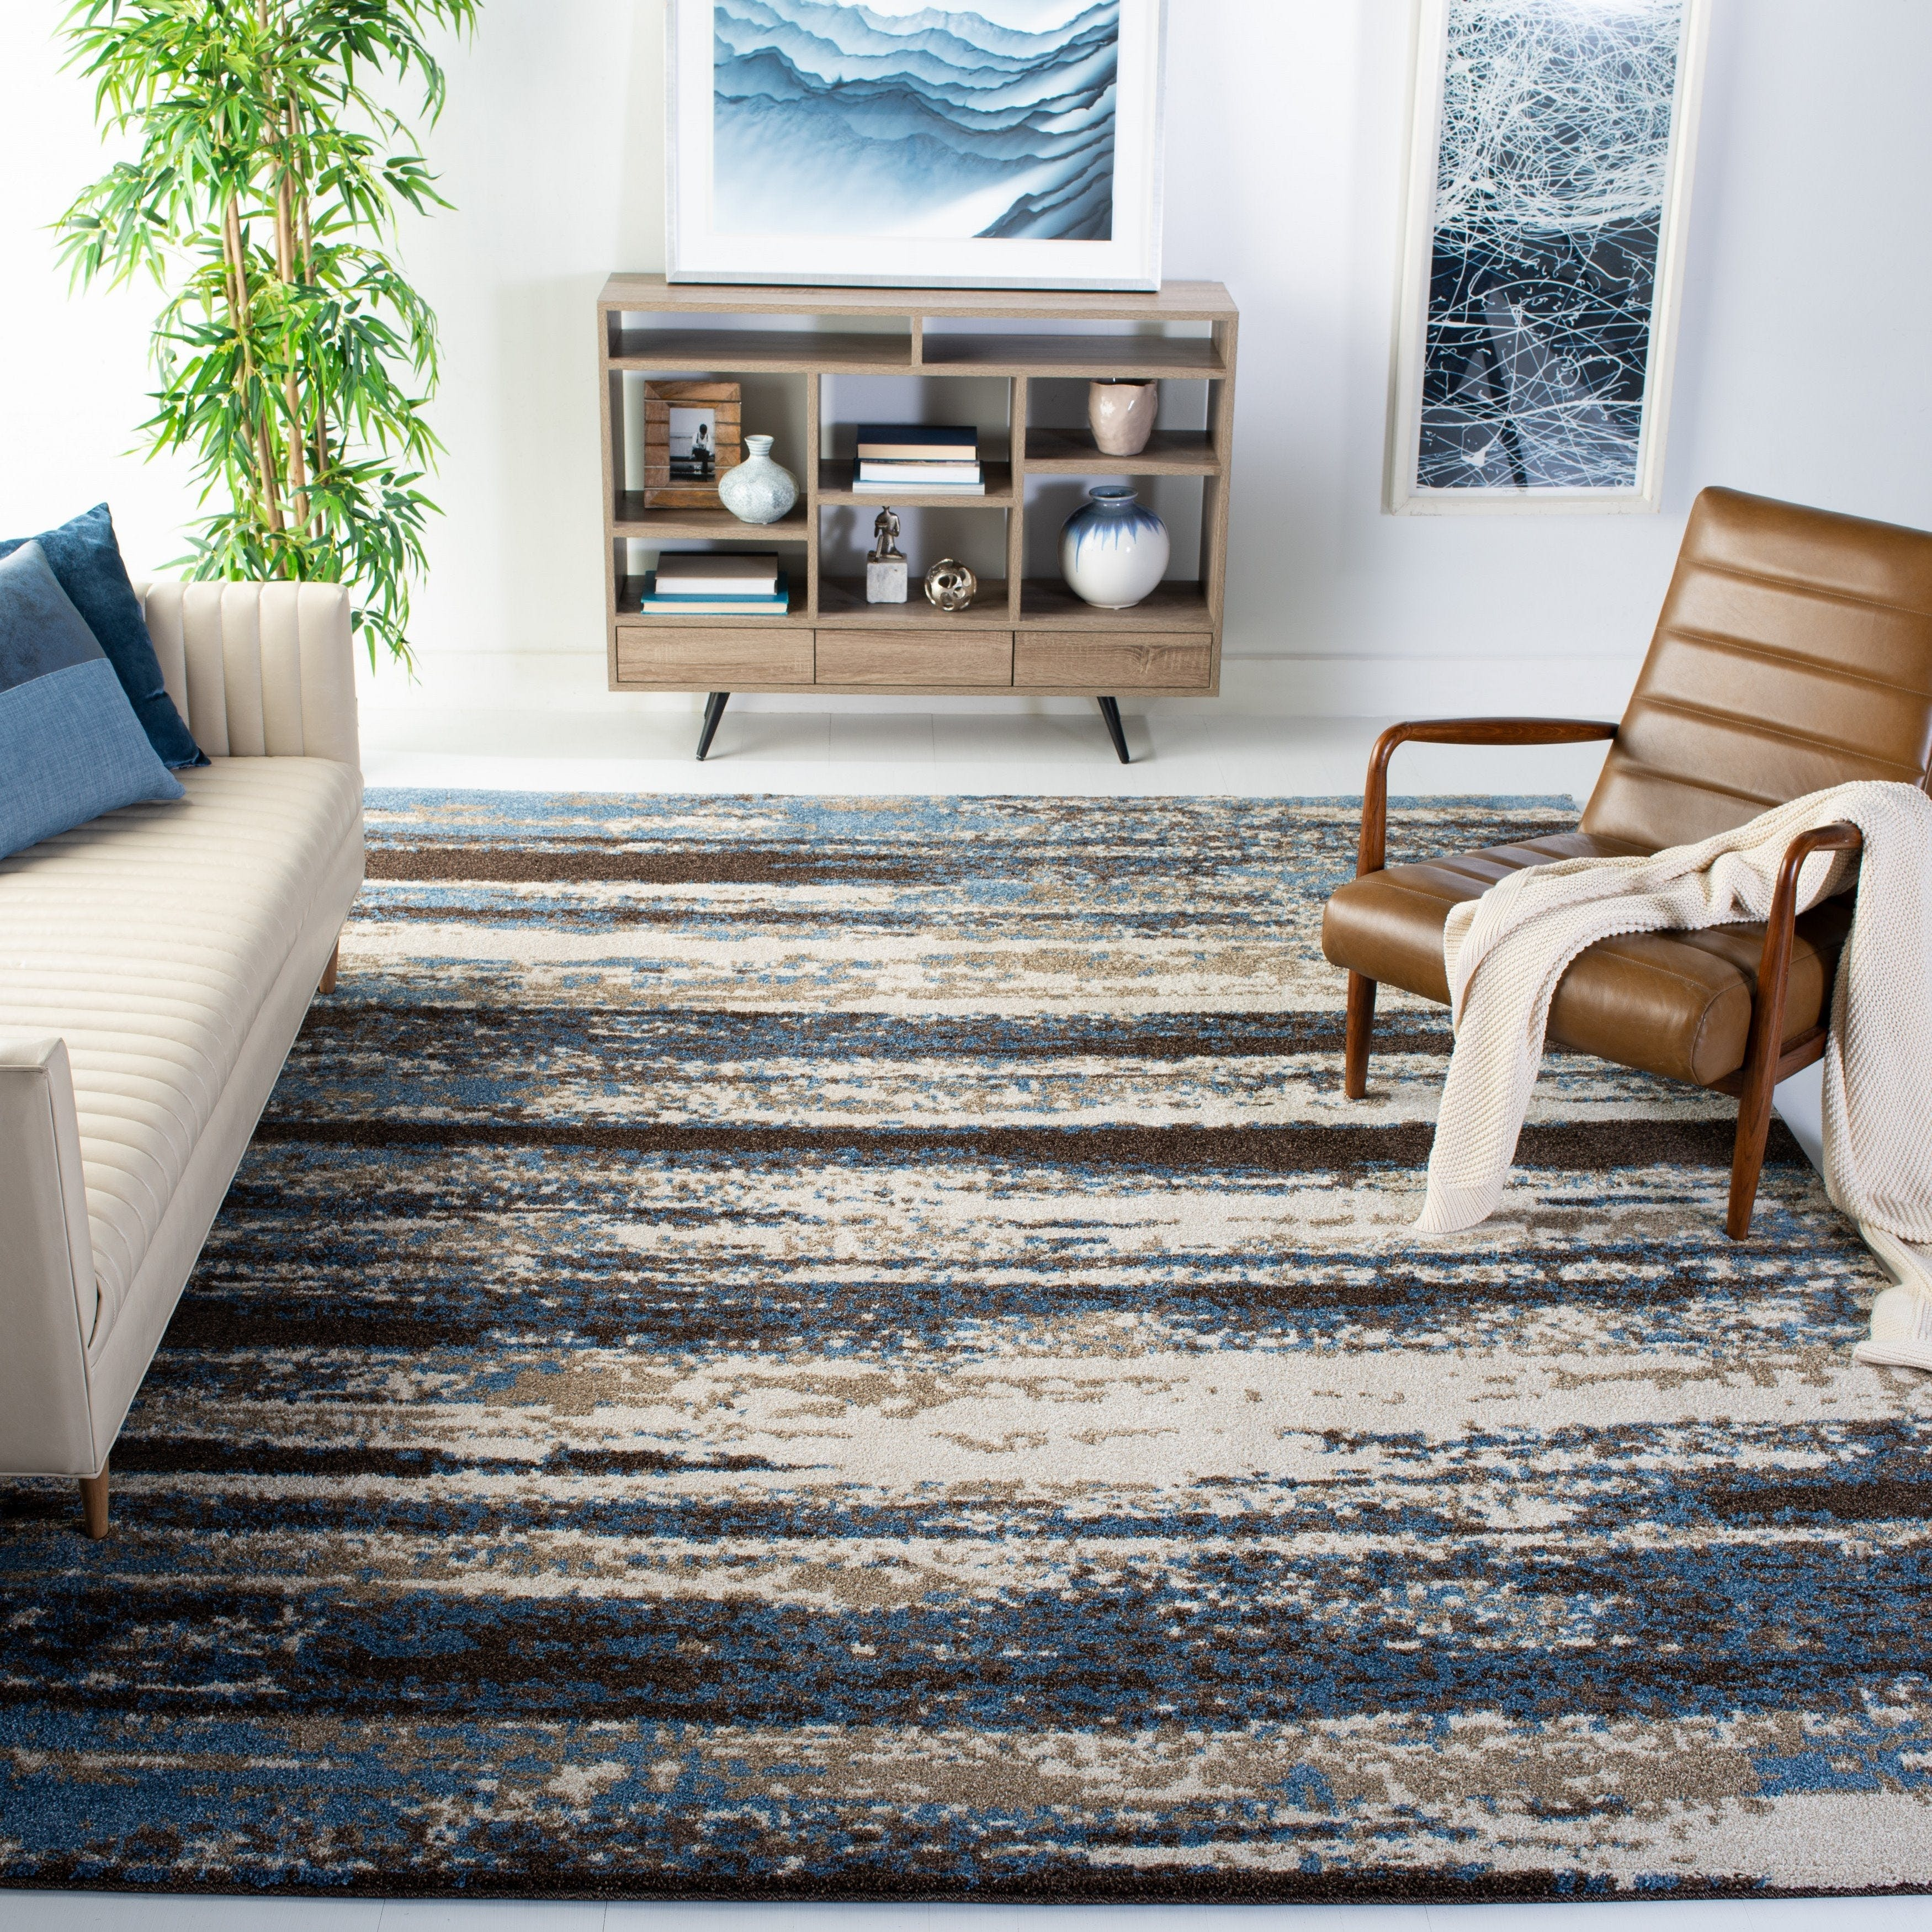 Shop 5 X 8 Area Rugs At Rue La La Starting At 50 The Krazy Coupon Lady